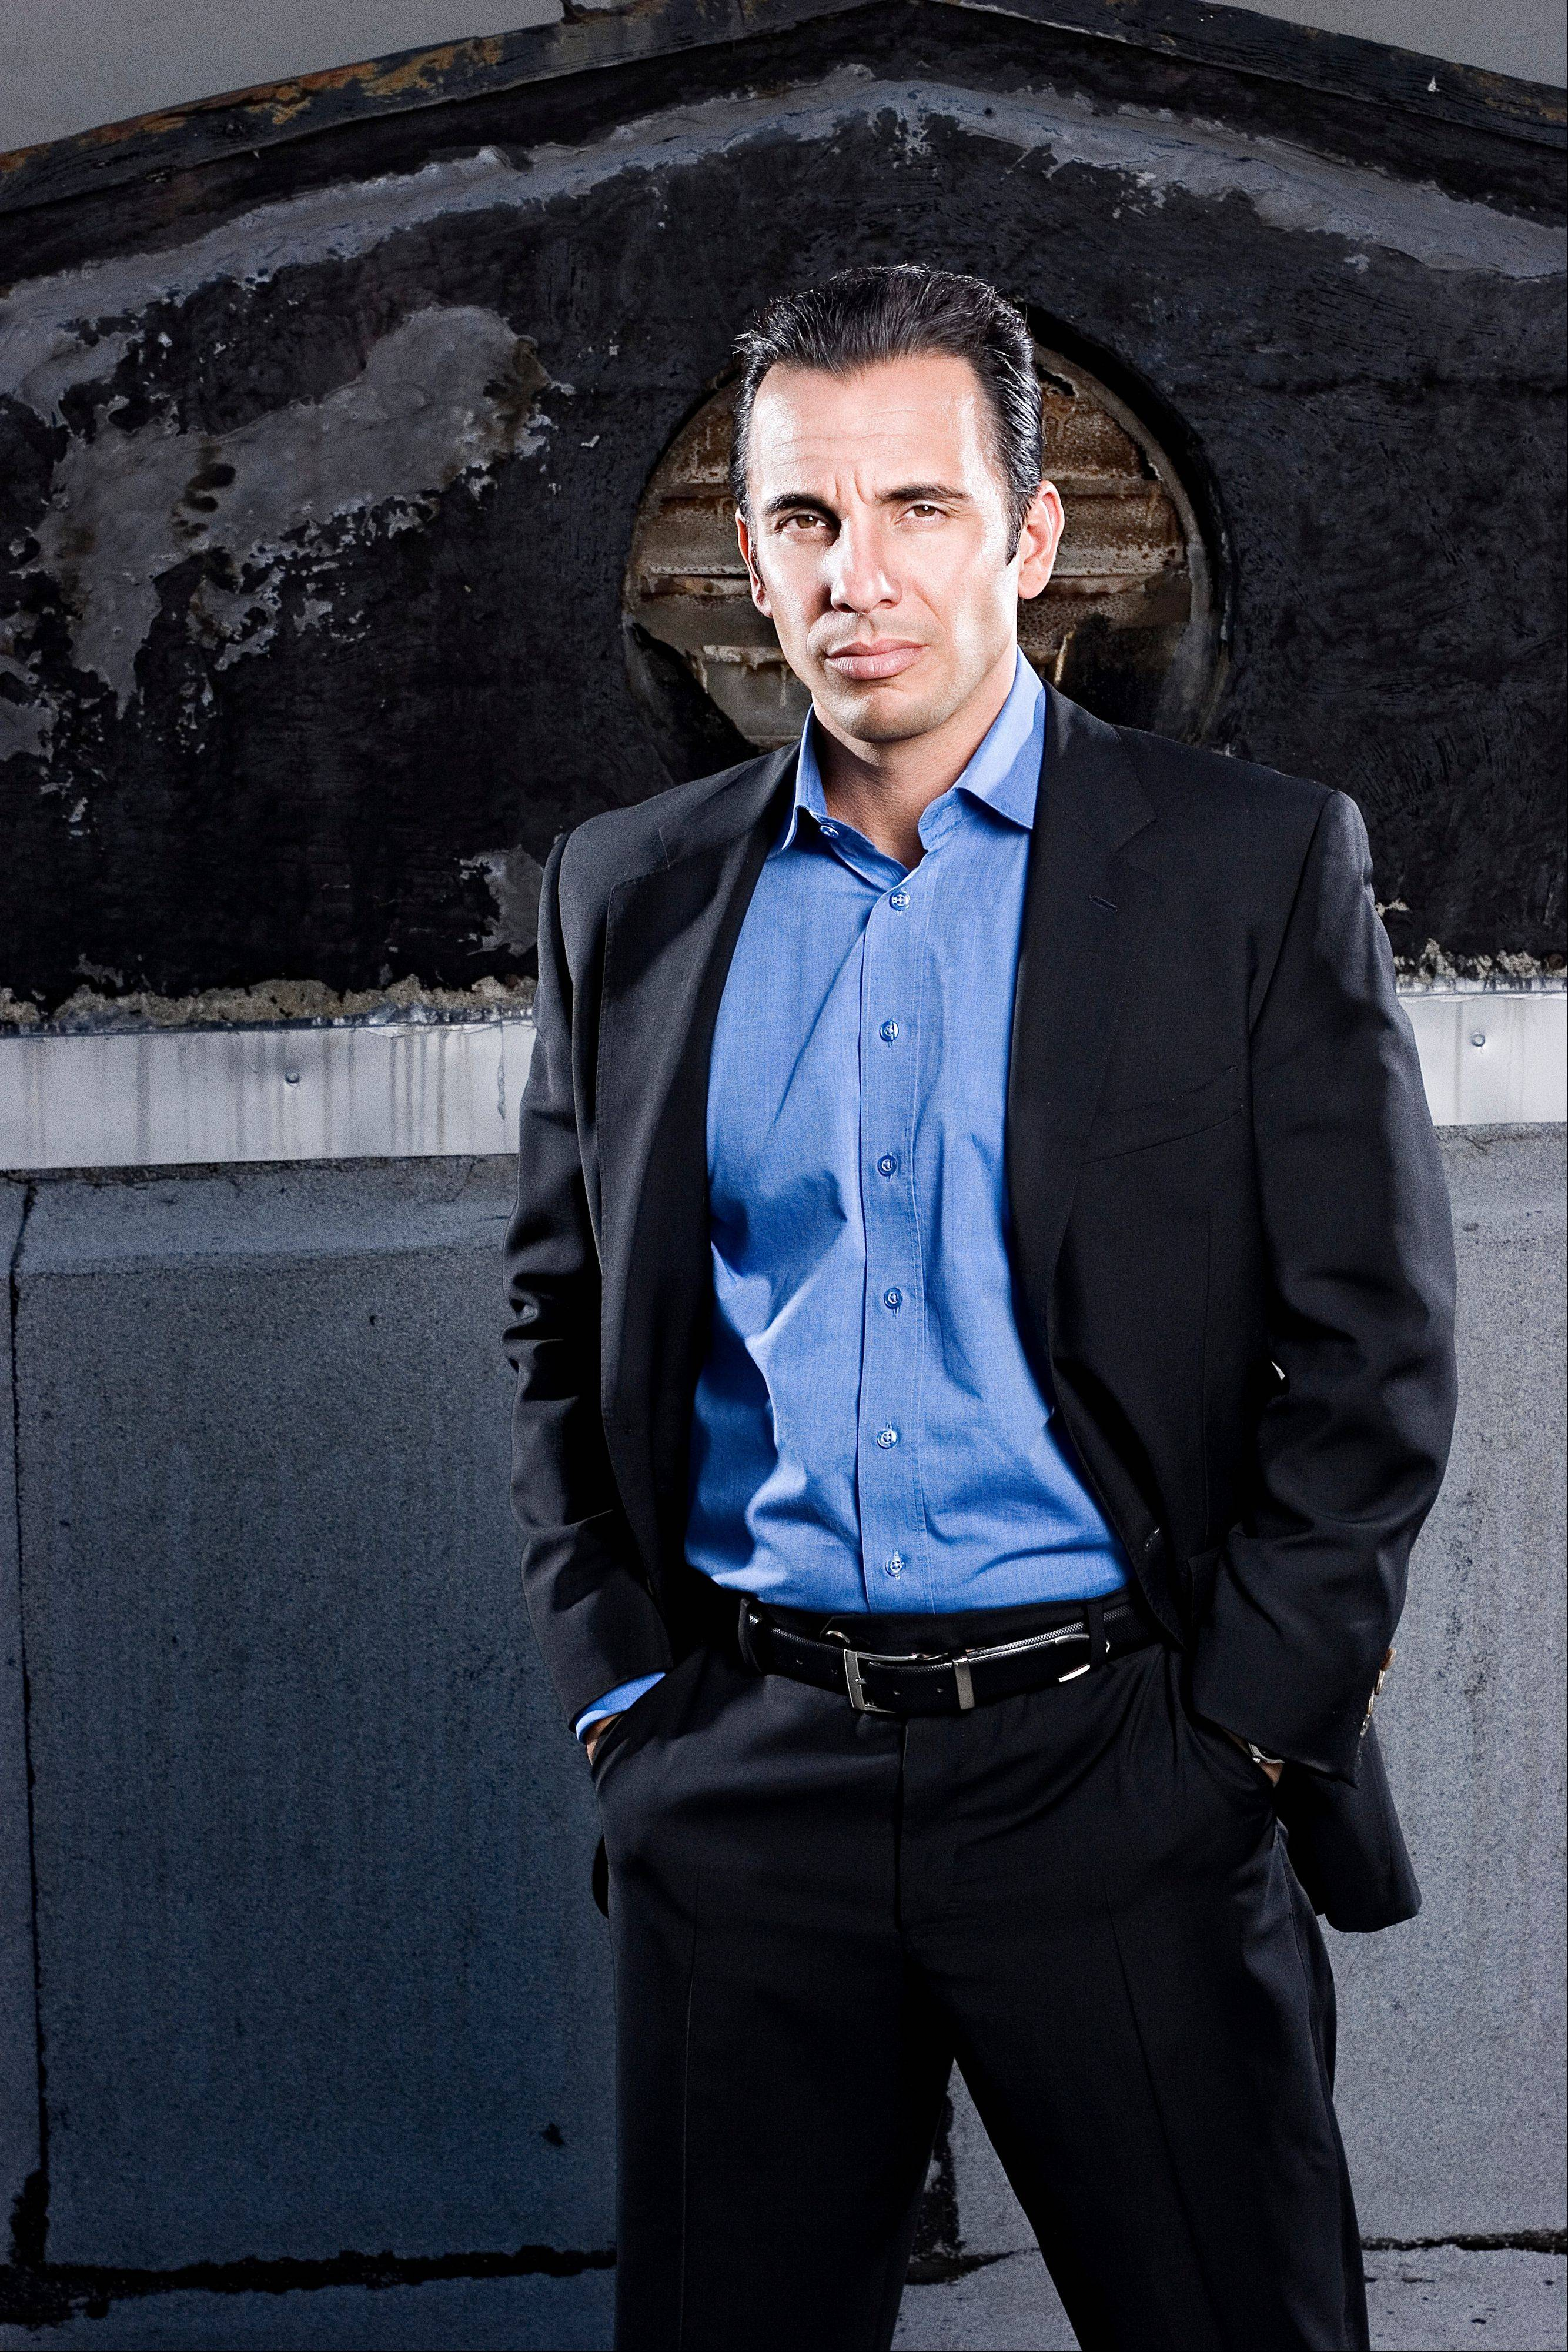 Comedian Sebastian Maniscalco returns to town for an engagement at Zanies in Rosemont.